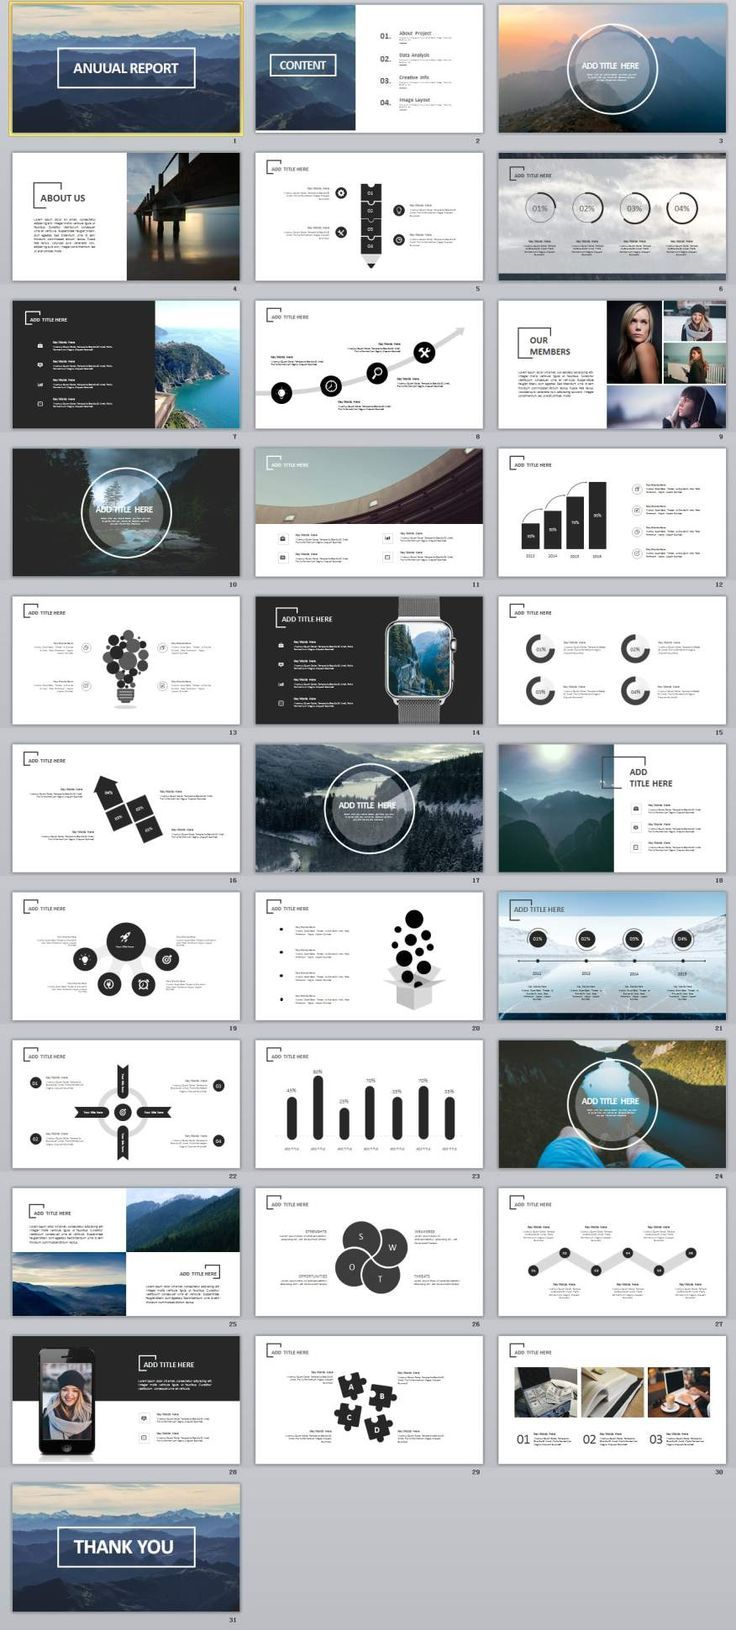 31+ creative annual swot report PowerPoint template #powerpoint #templates #presentation #animation #backgrounds #pptwork.com #annual #report #business #company #design #creative #slide #infographic #chart #themes #ppt #pptx